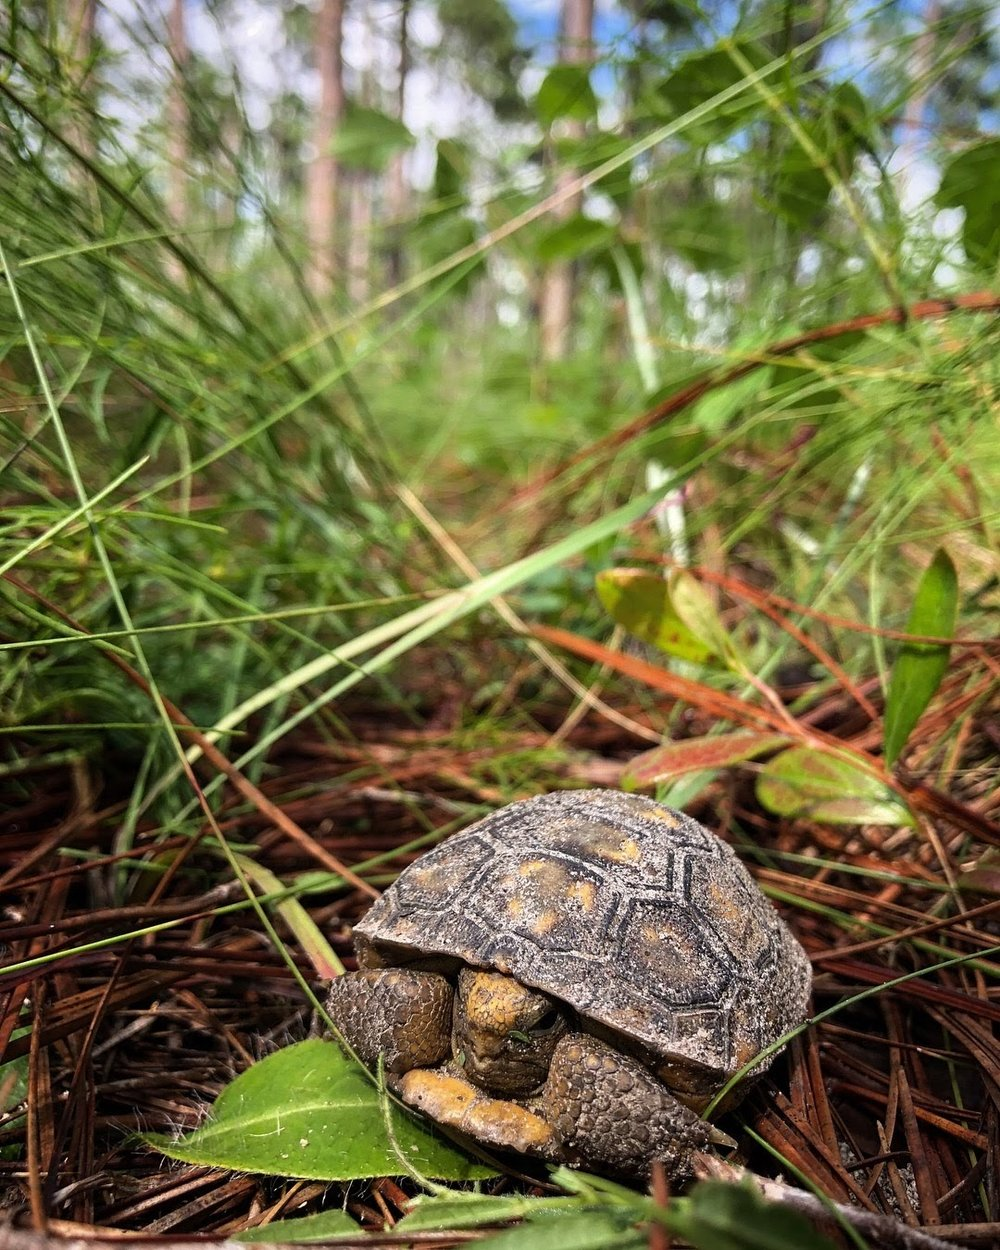 The Gopher tortoise is a currently threatened keystone species that relies on healthy pine forests for habitat. Photo by Lilly Anderson-Messec (Photo: Lilly Anderson-Messec)